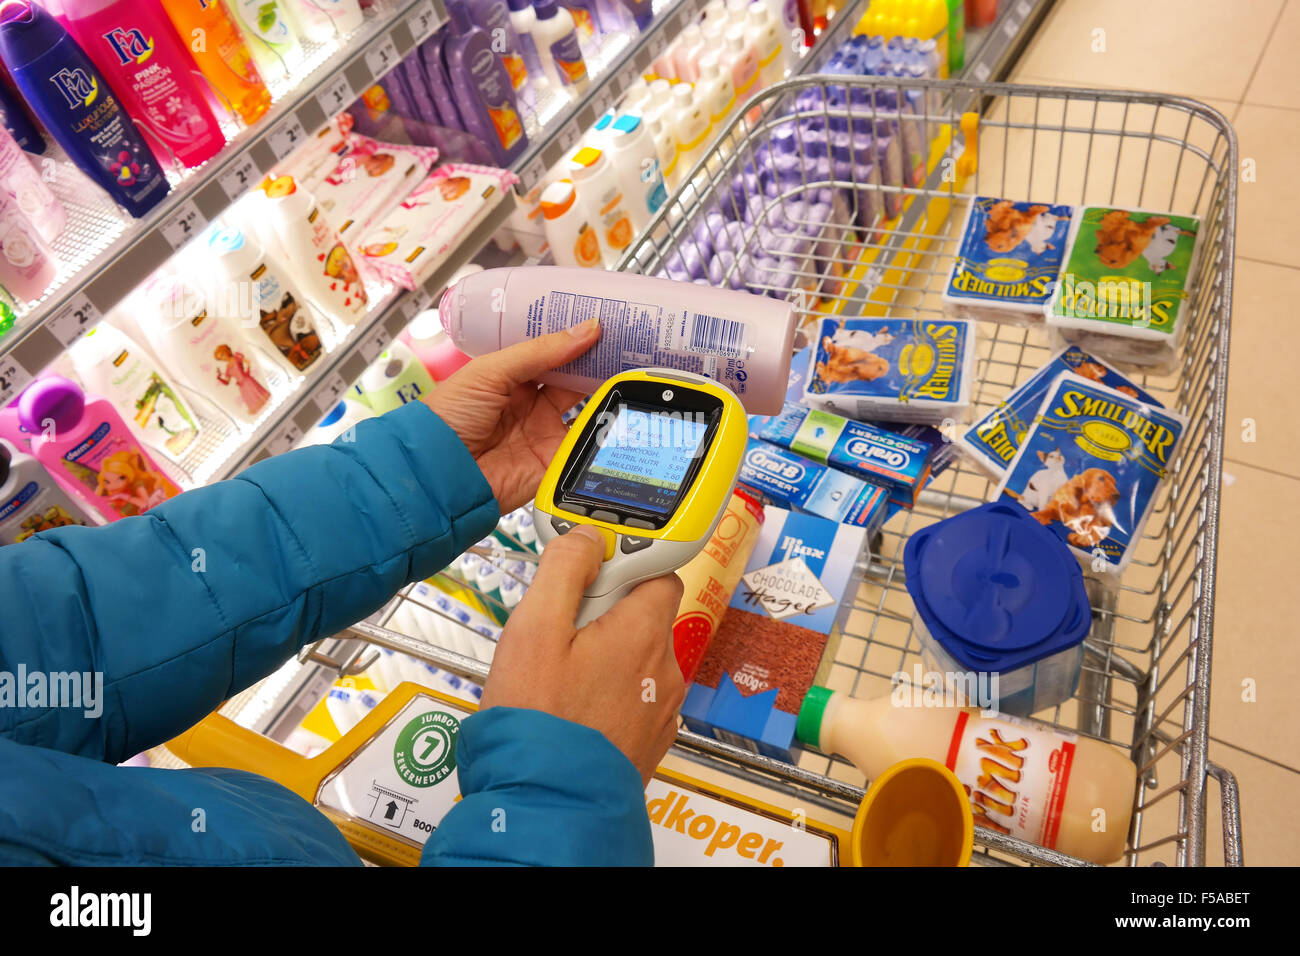 Portable barcode scanner in a Jumbo Supermarket - Stock Image